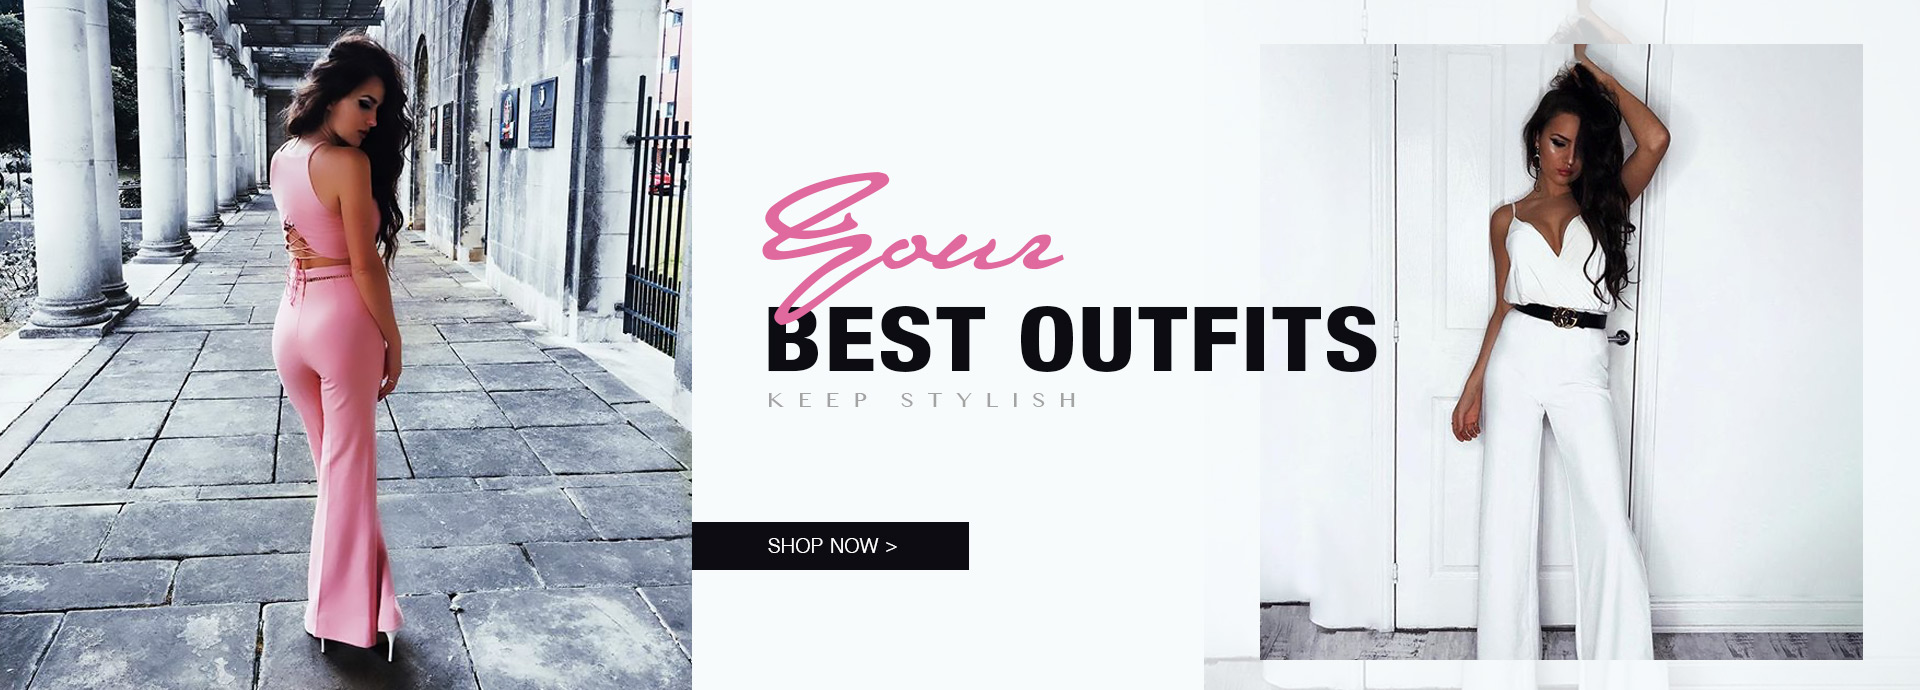 Your Best Outfits